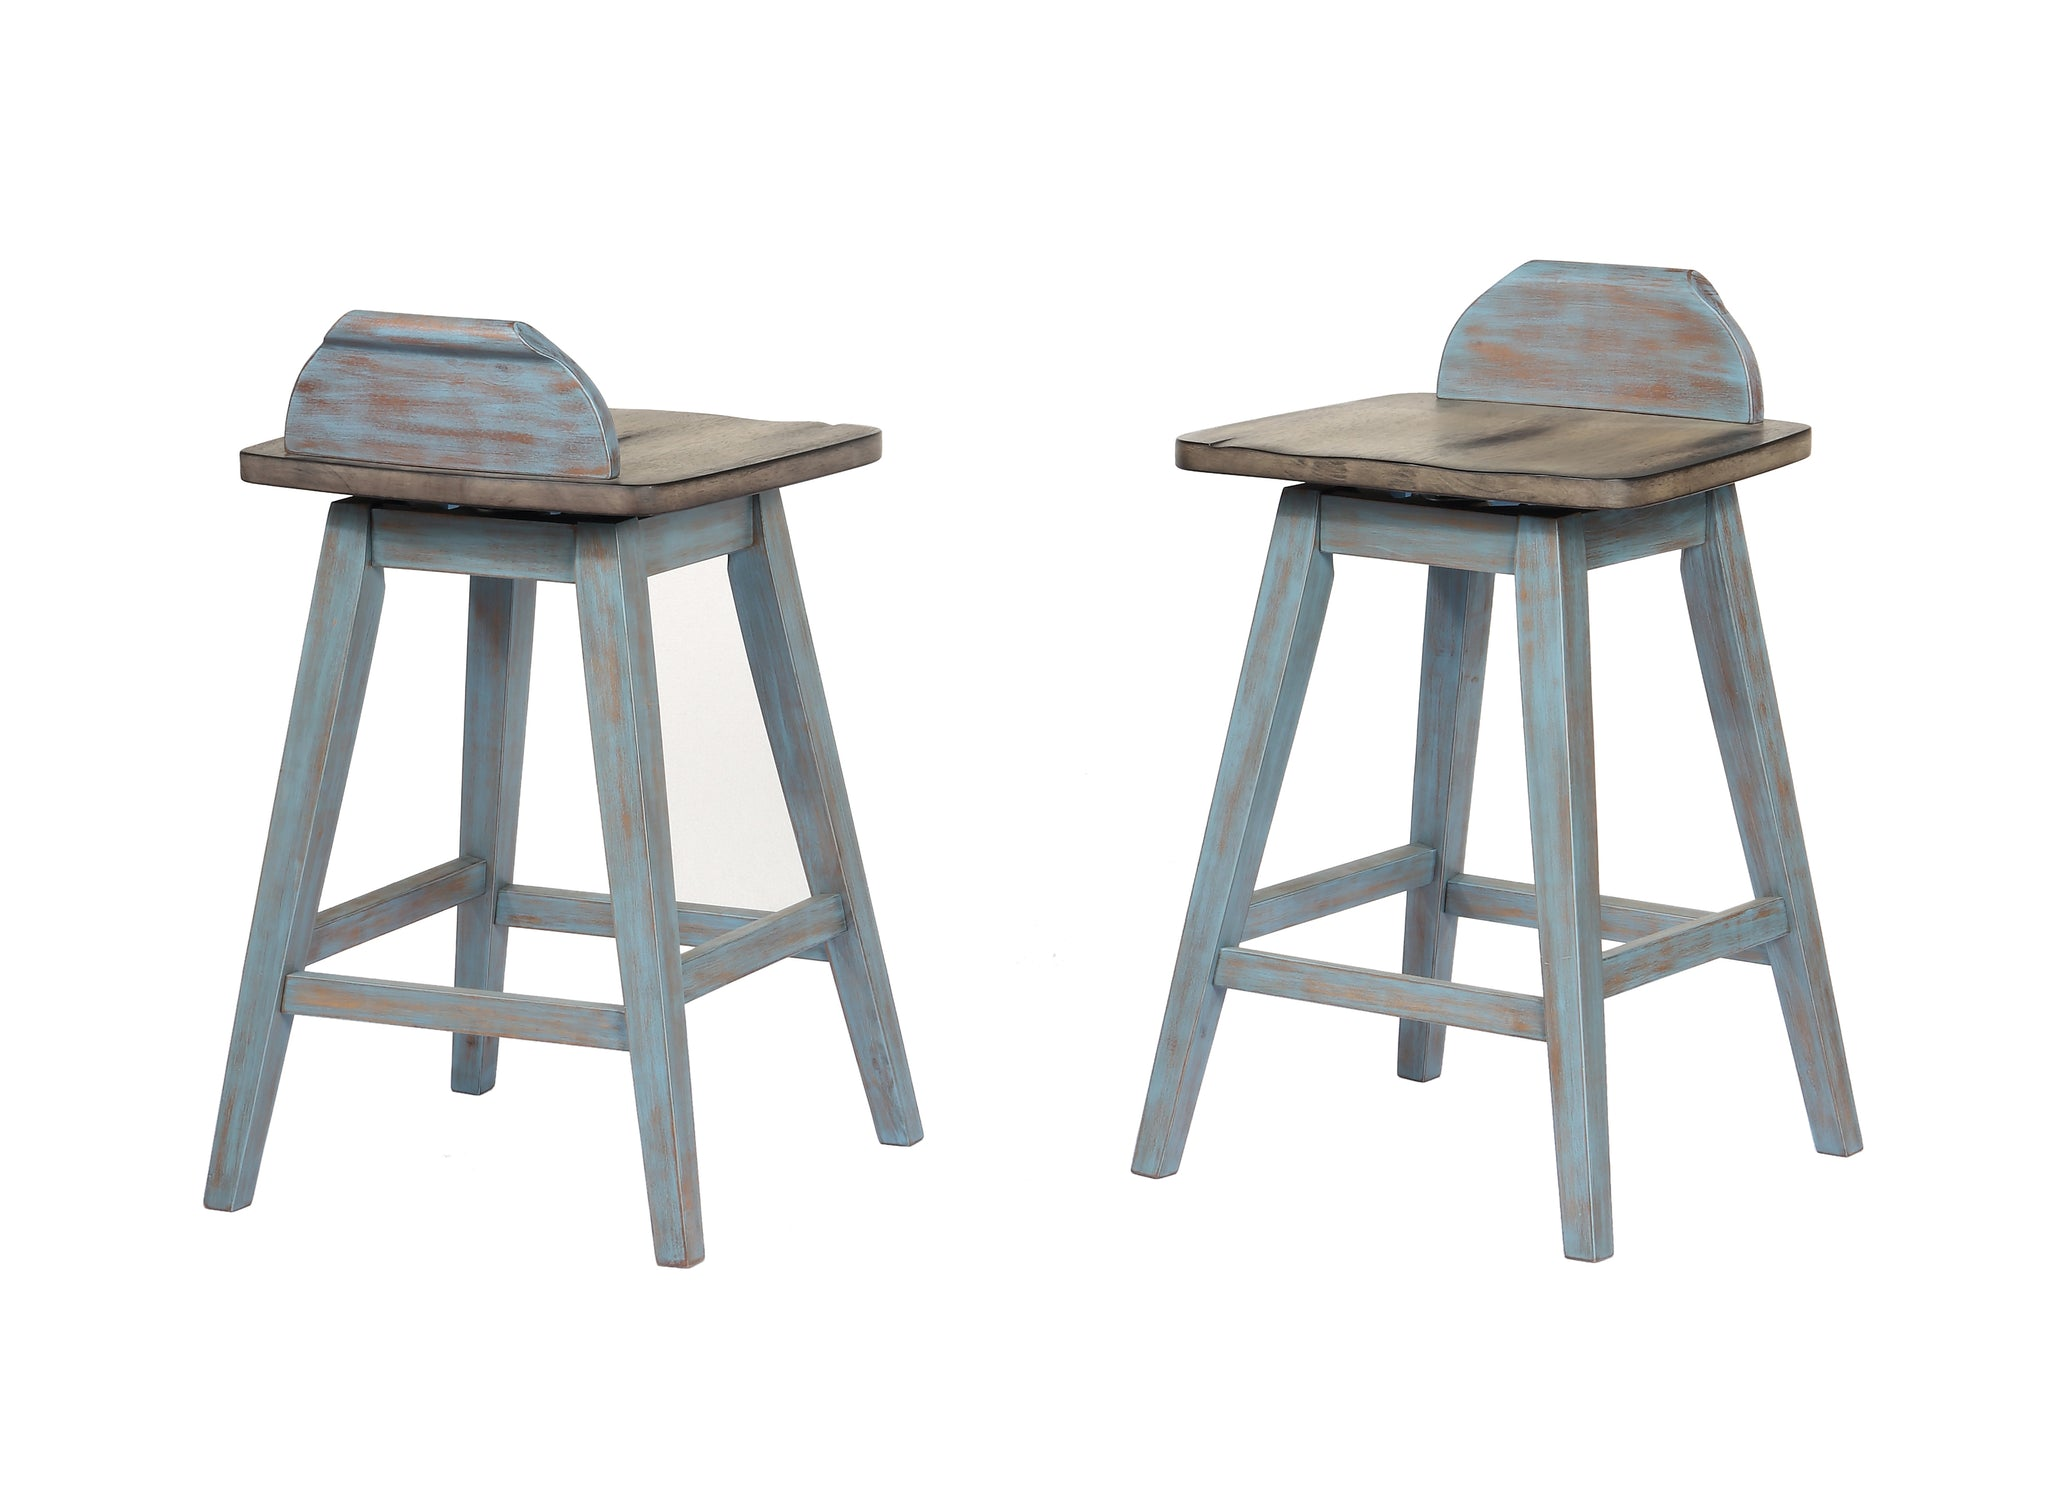 c3ff7f1045a8 ... Kris Counter Height Dining Set, Distressed Gray & Washed Blue ...